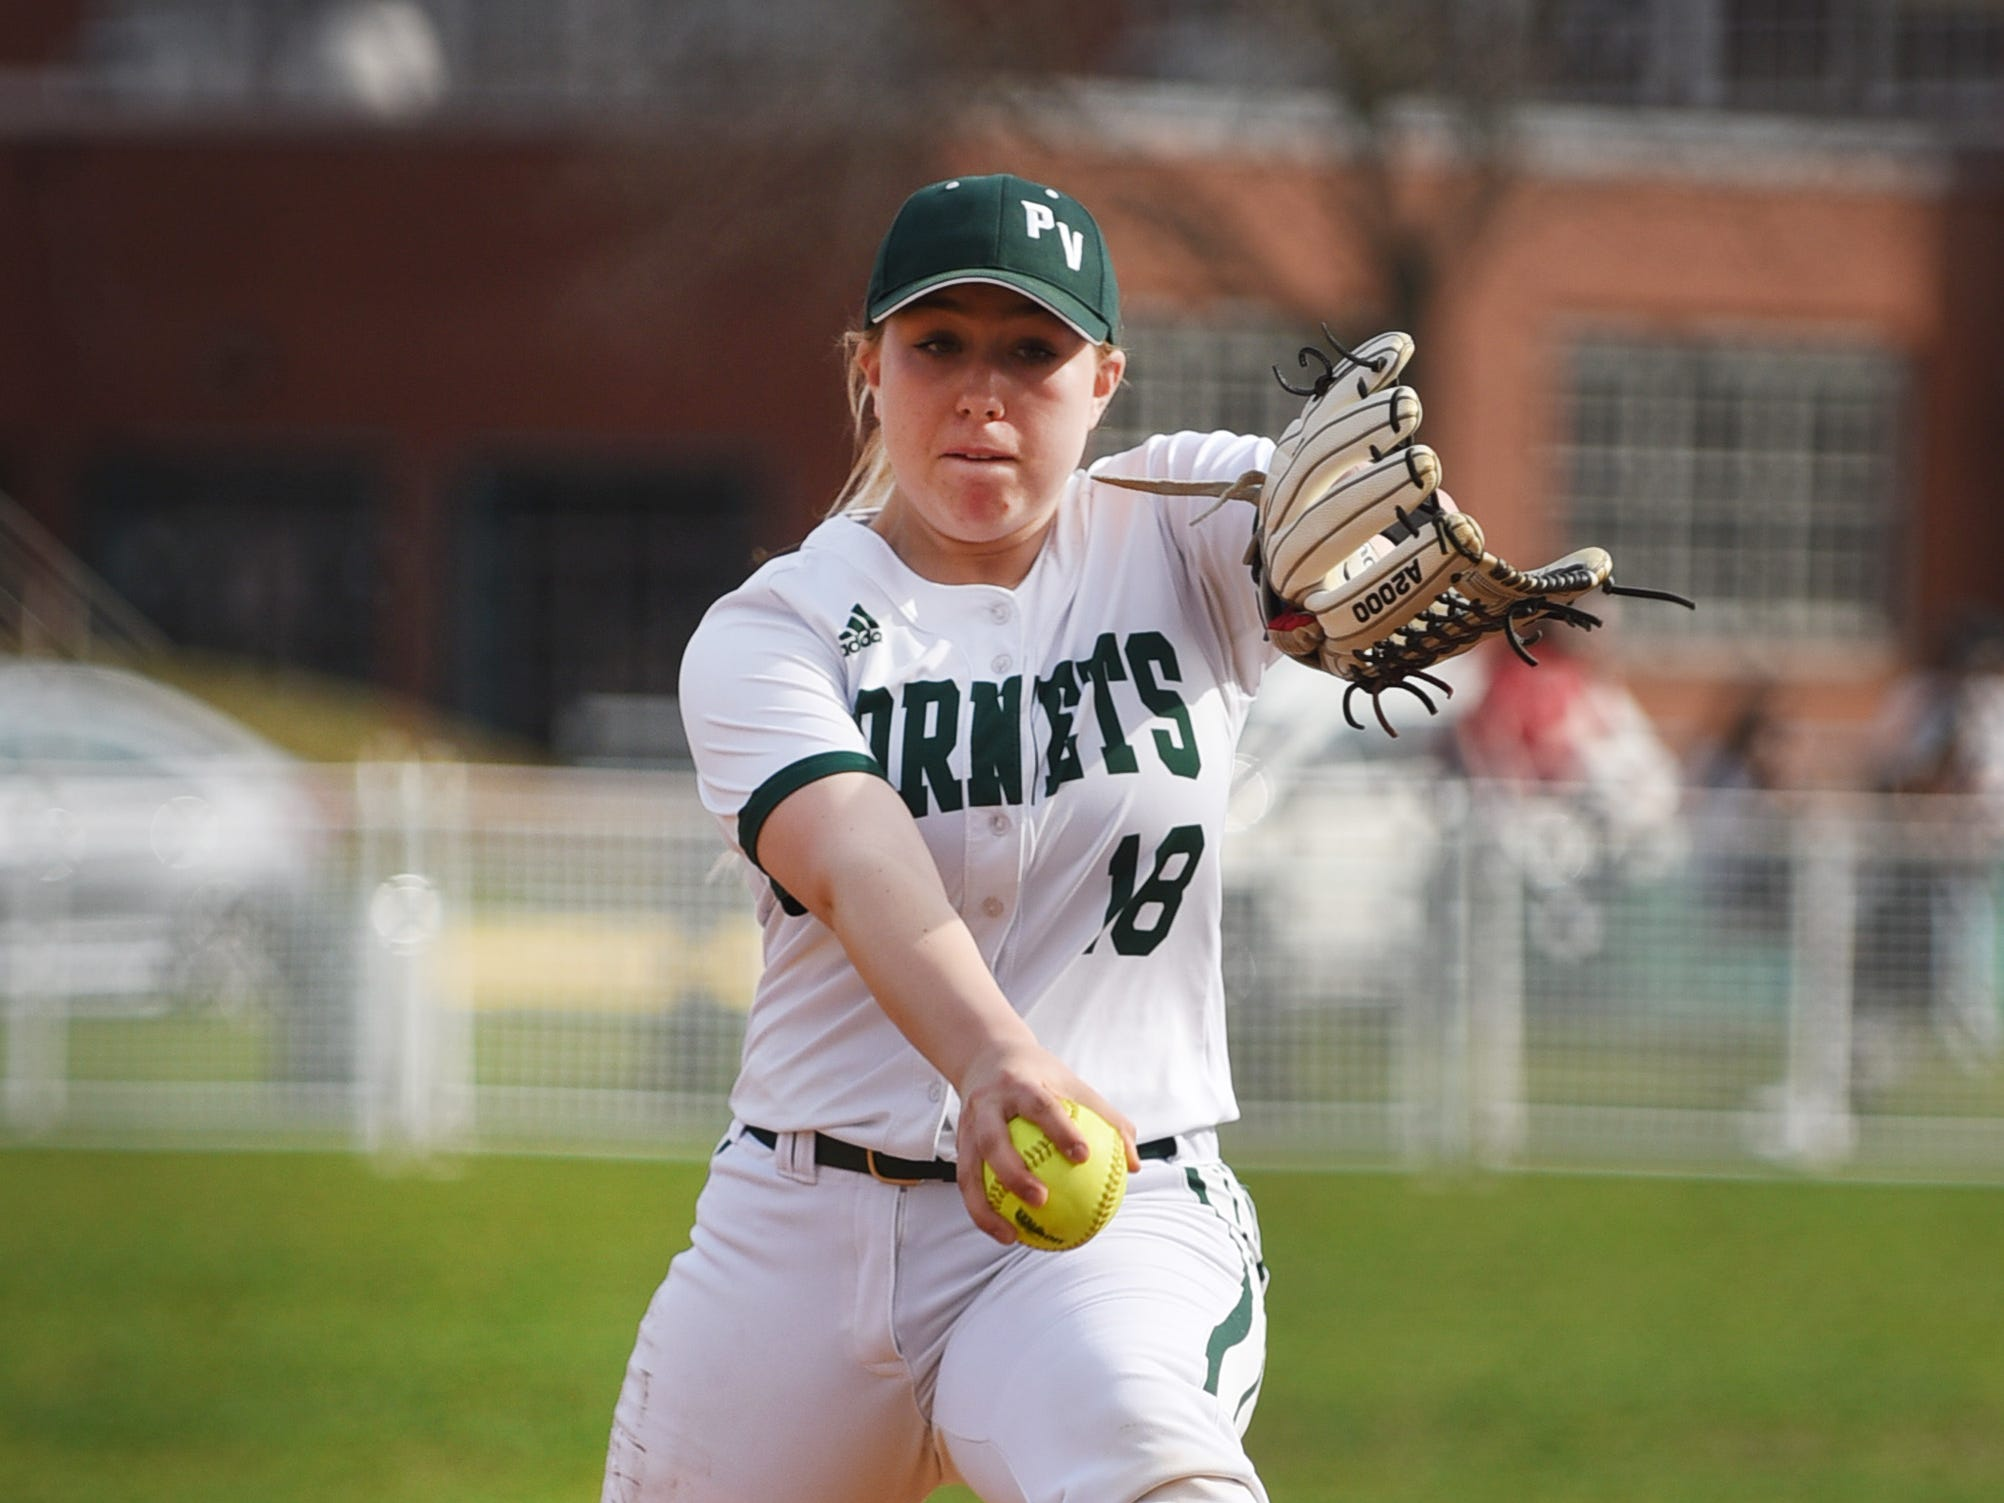 Starting pitcher Shana Donnelly (no.18) of Passaic Valley delivers the pitch against West Milford in the first inning of their game at Passaic Valley HS in Little Falls on 04/08/19.